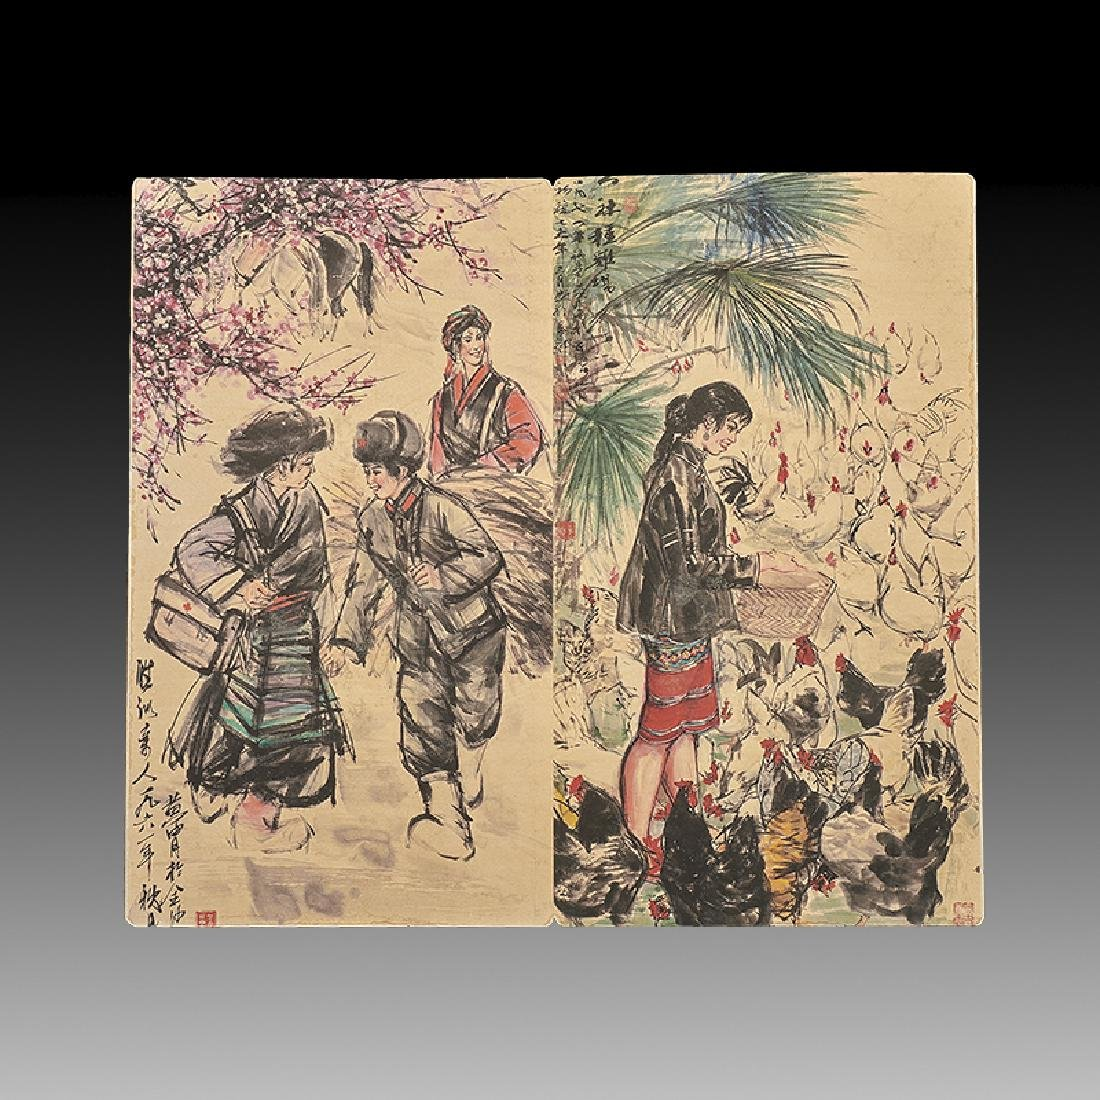 Rare chinese painting album by Hang zhou (1925-1997) - 4